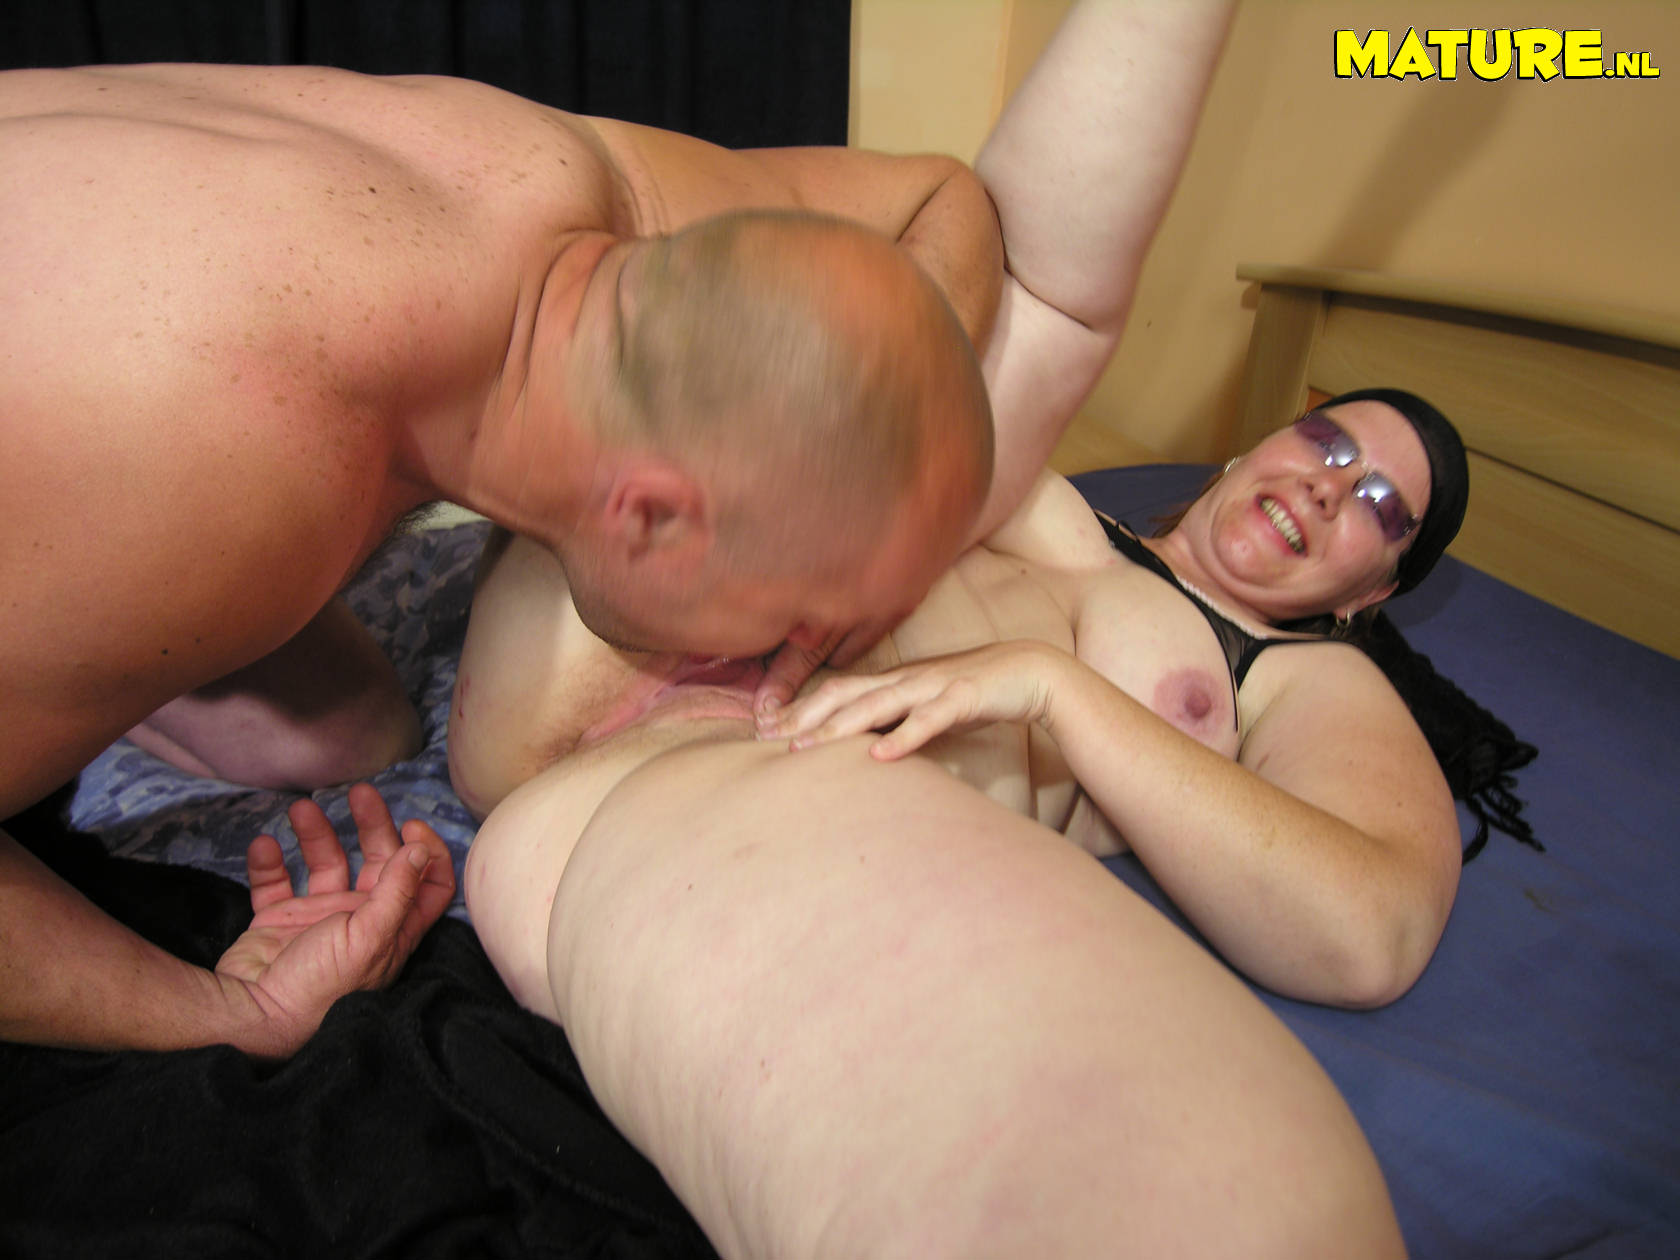 Mature married couples fucking